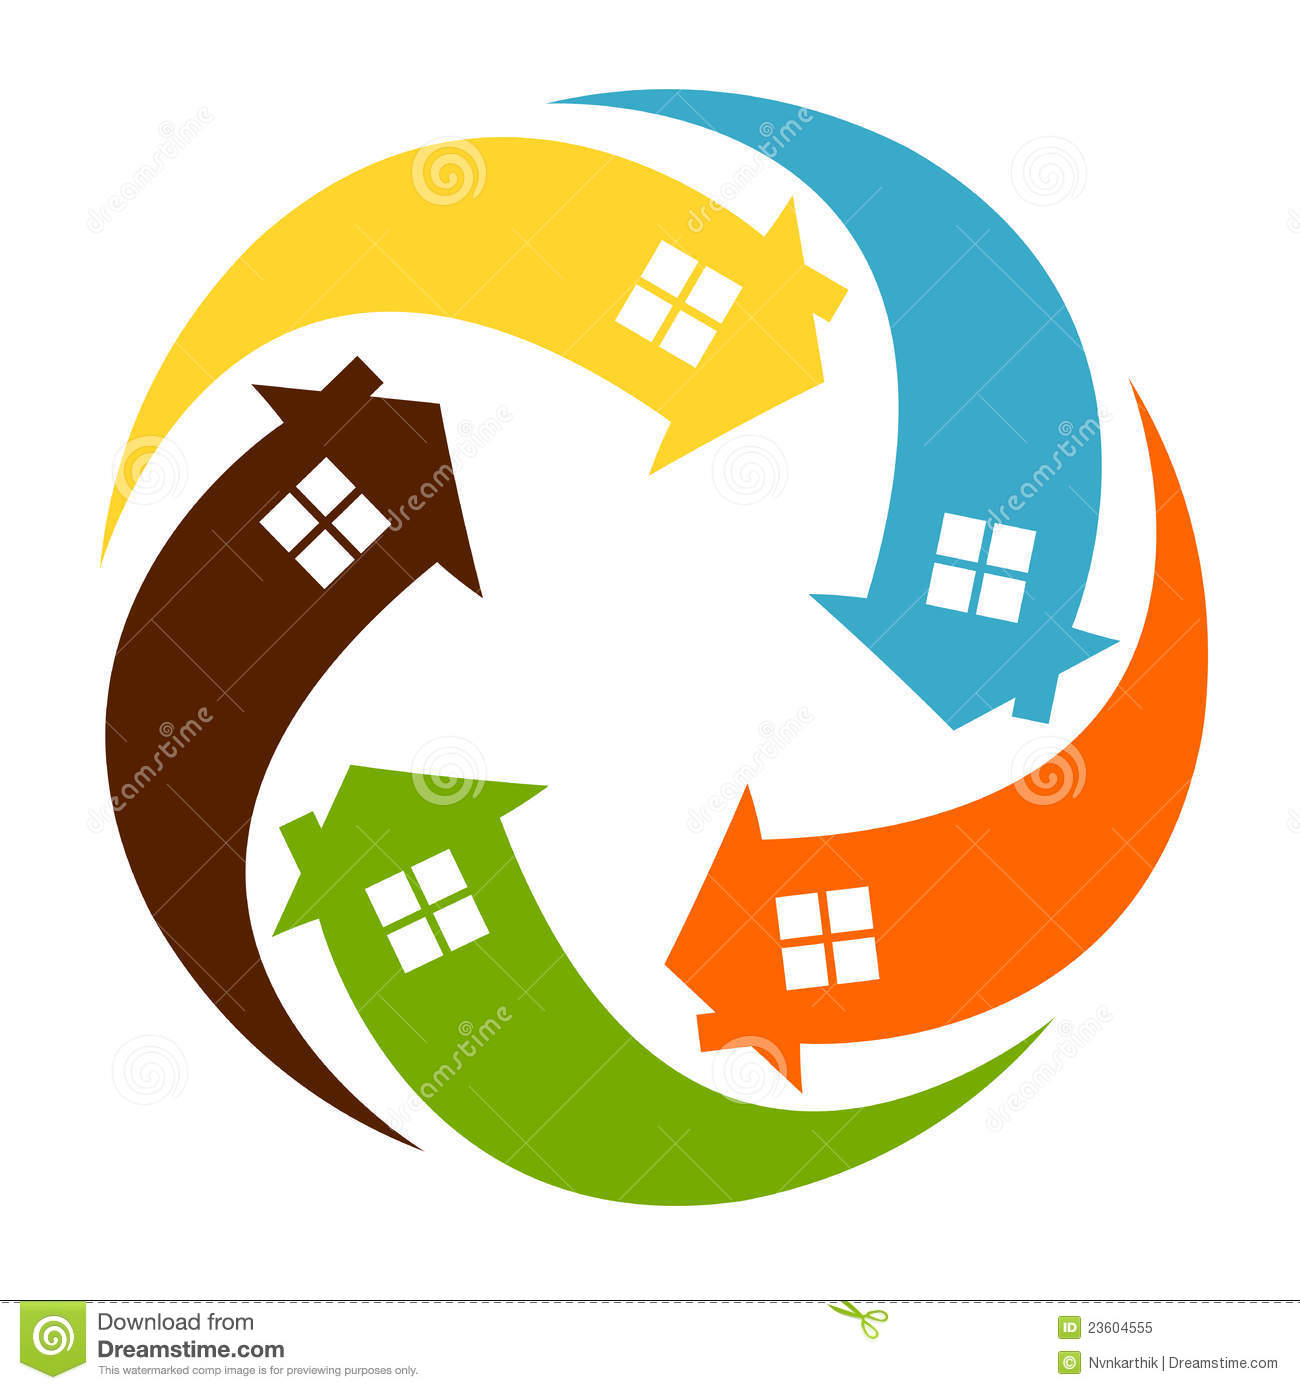 Home Logo Royalty Free Stock Photo - Image: 23604555